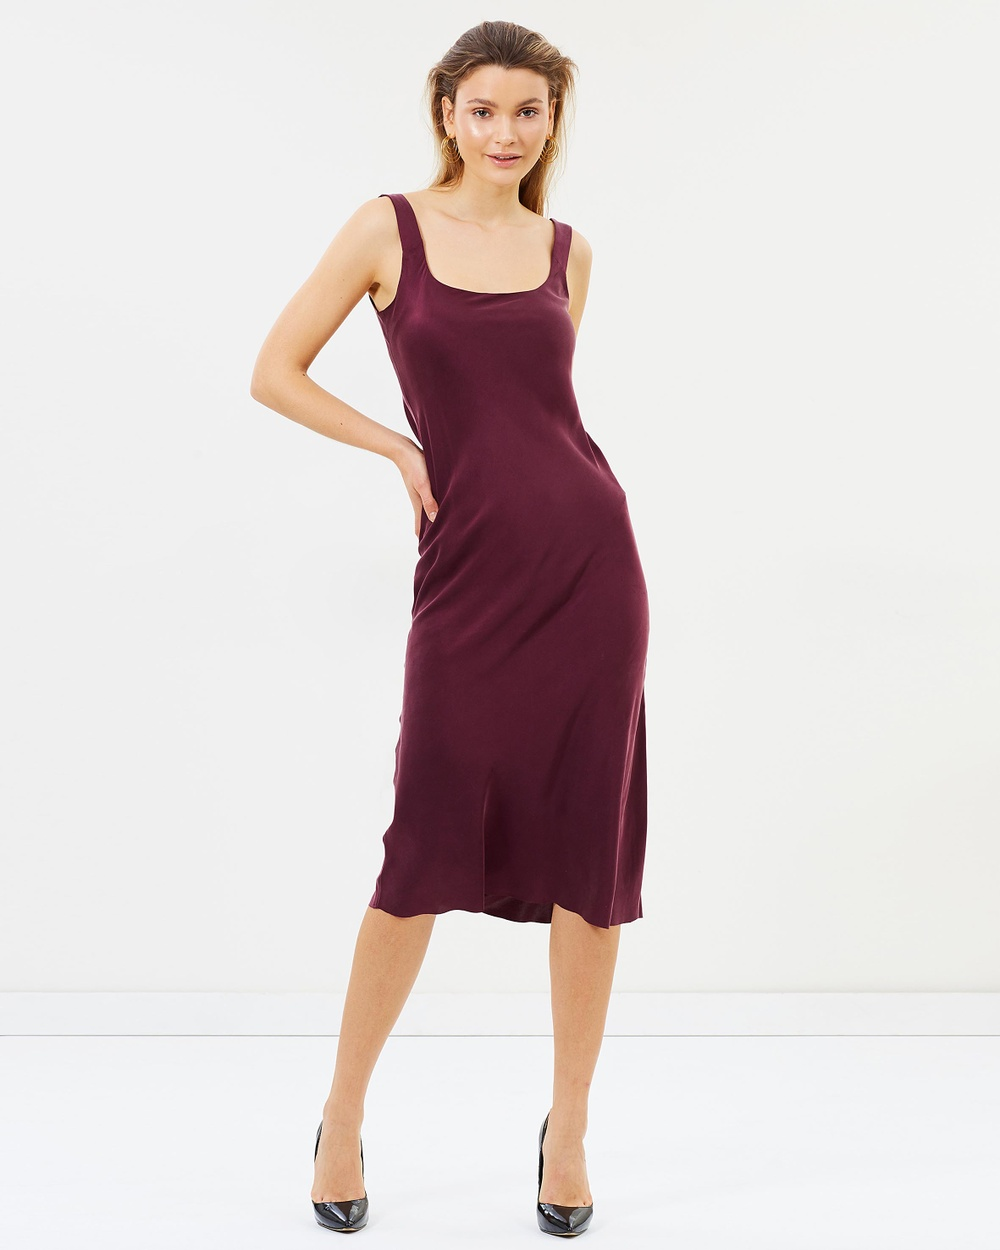 Bec & Bridge Linda Bias Midi Dress Dresses Plum Linda Bias Midi Dress